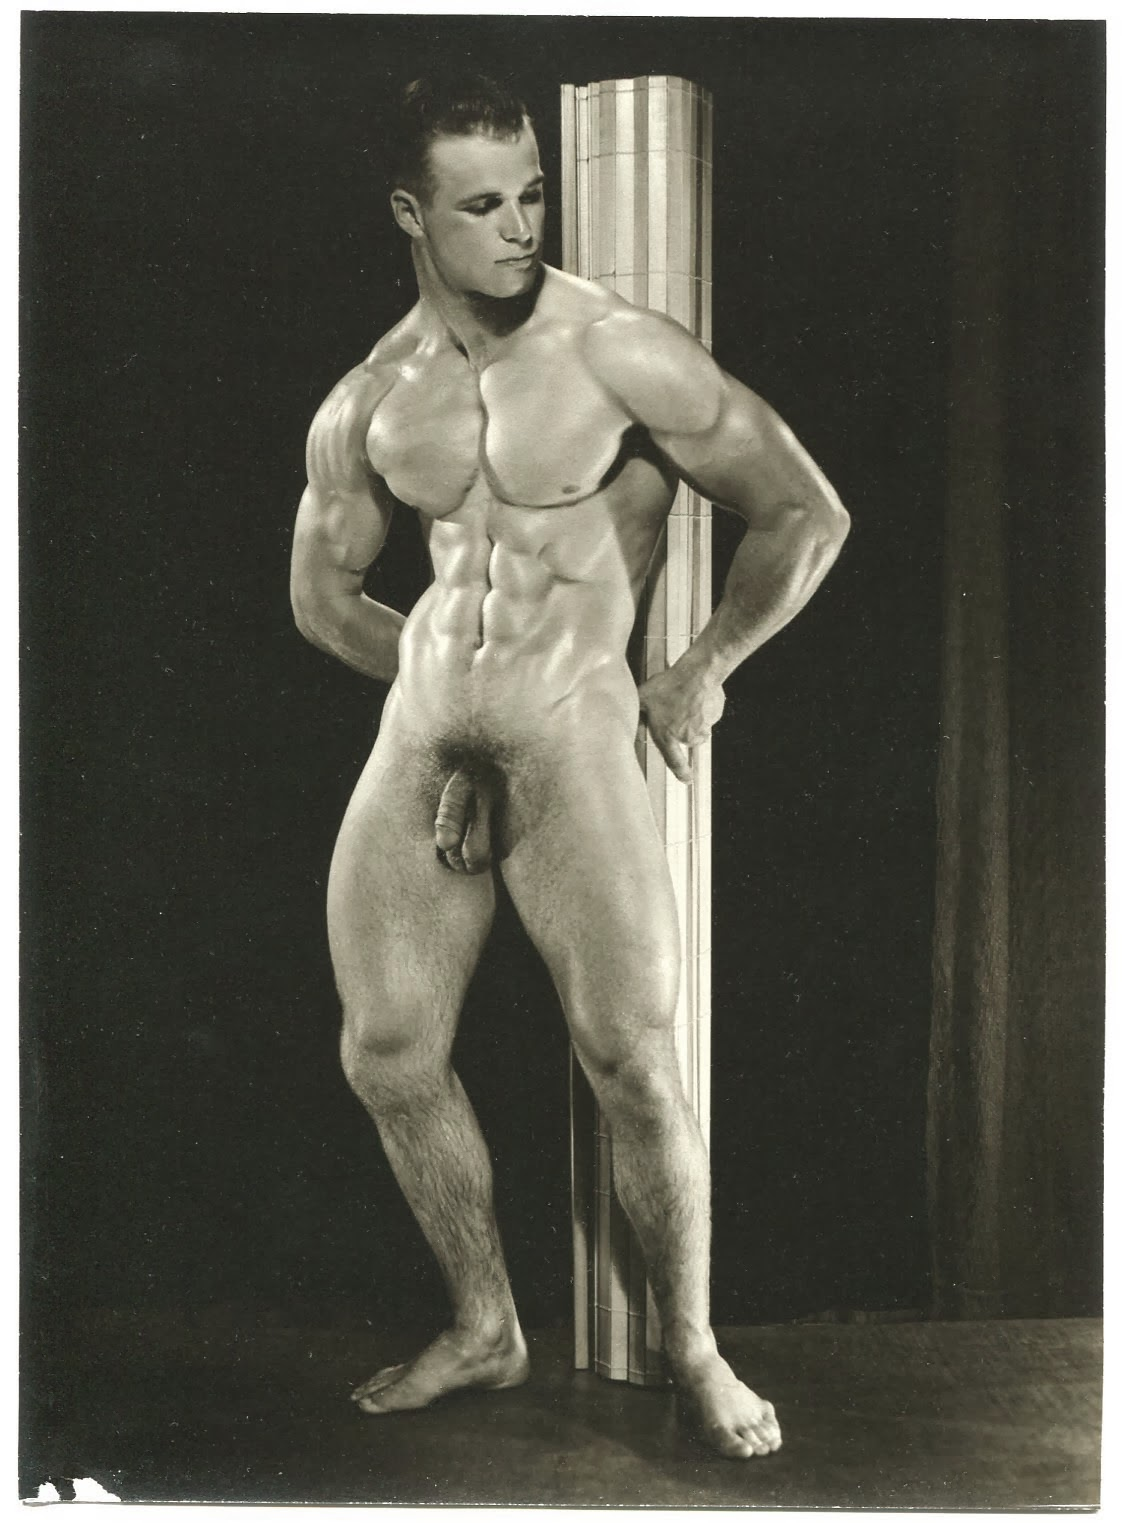 Are not Male physique vintage erotica doug courtney consider, that